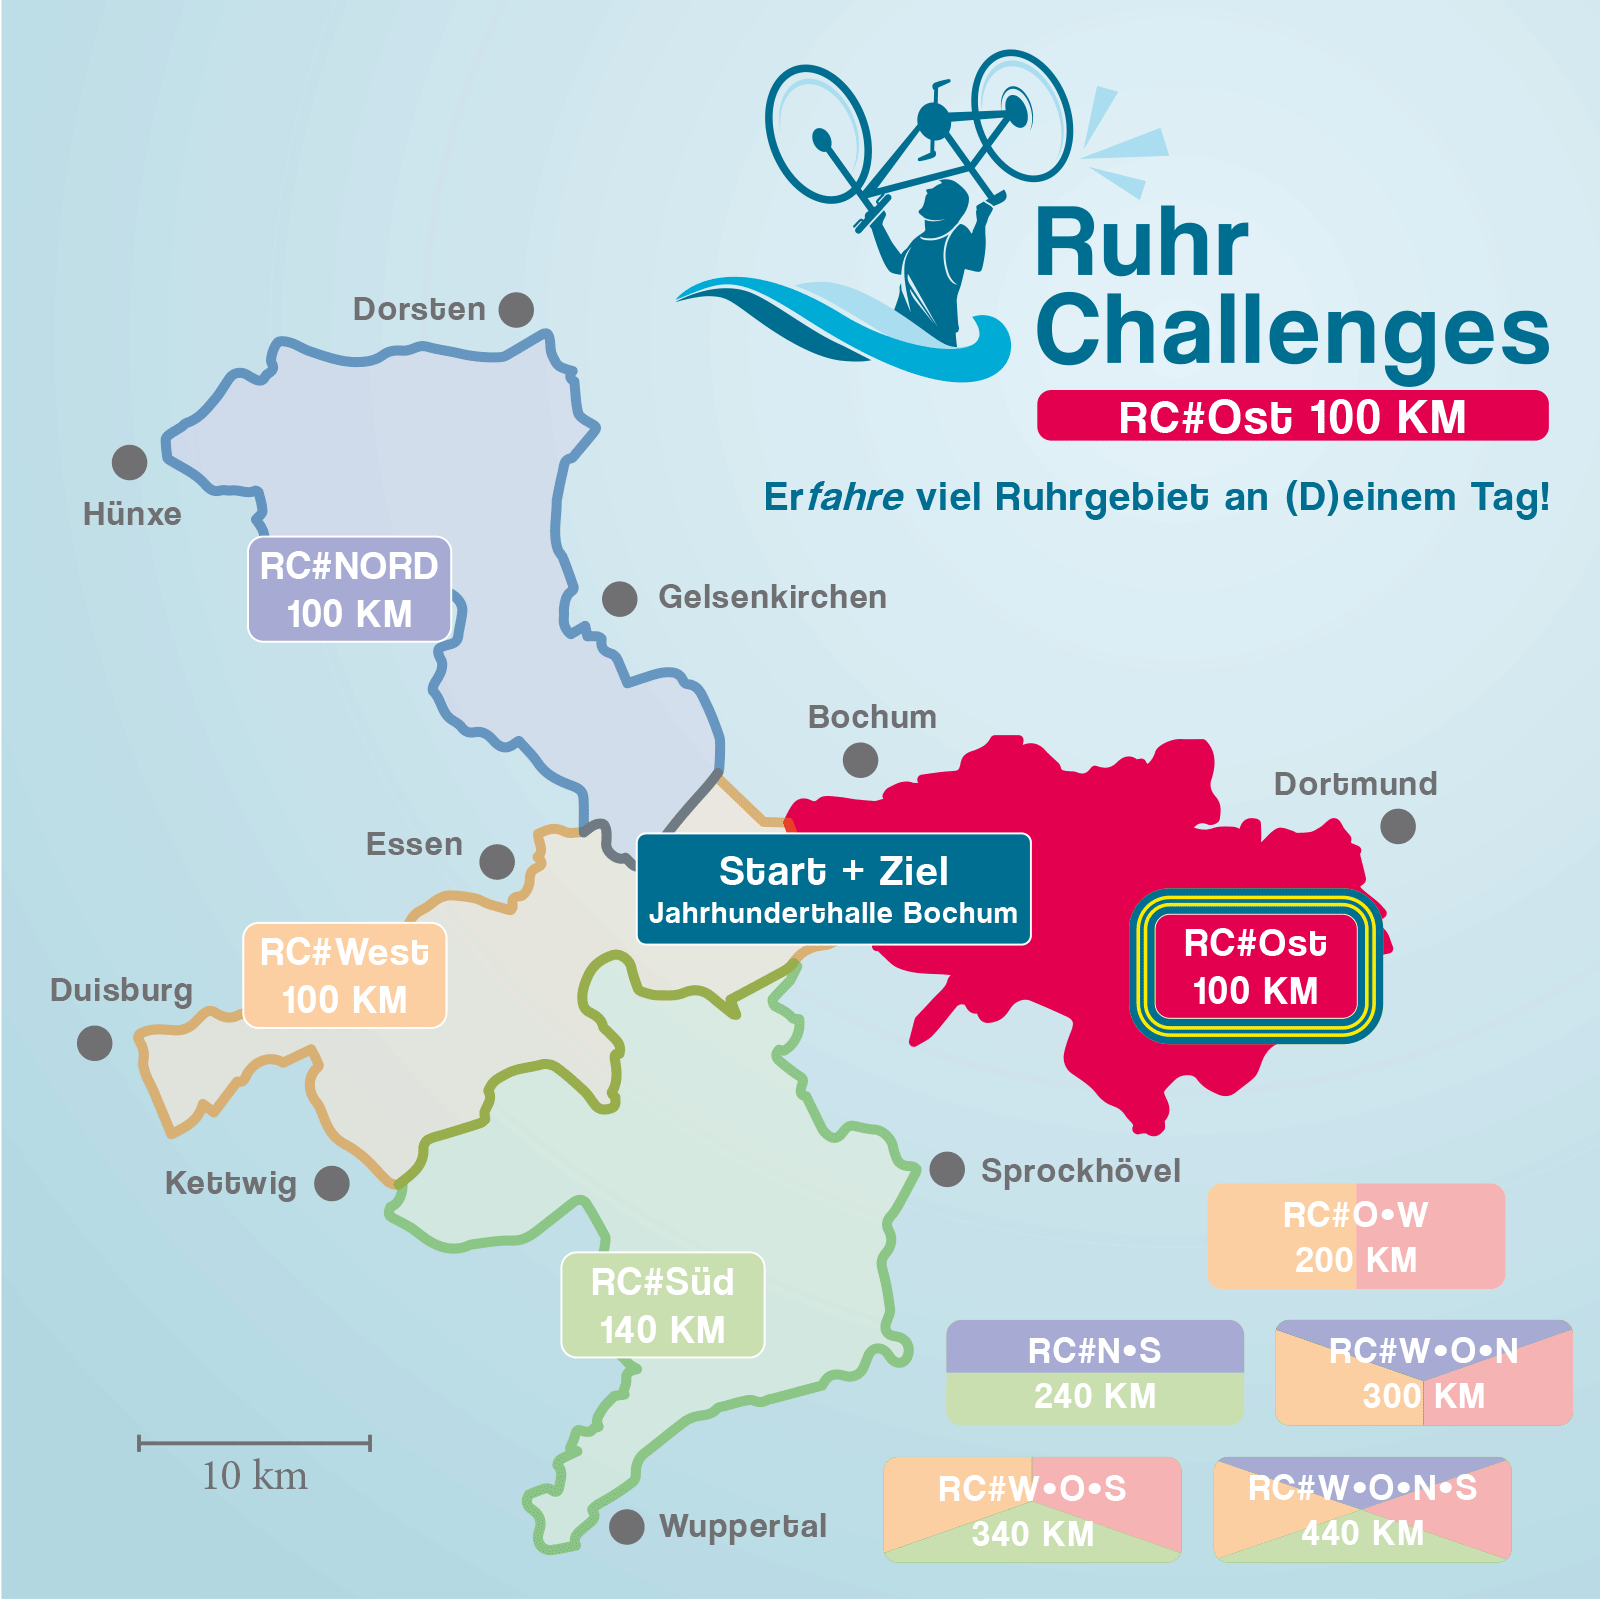 RuhrChallenges 2022 #Ost